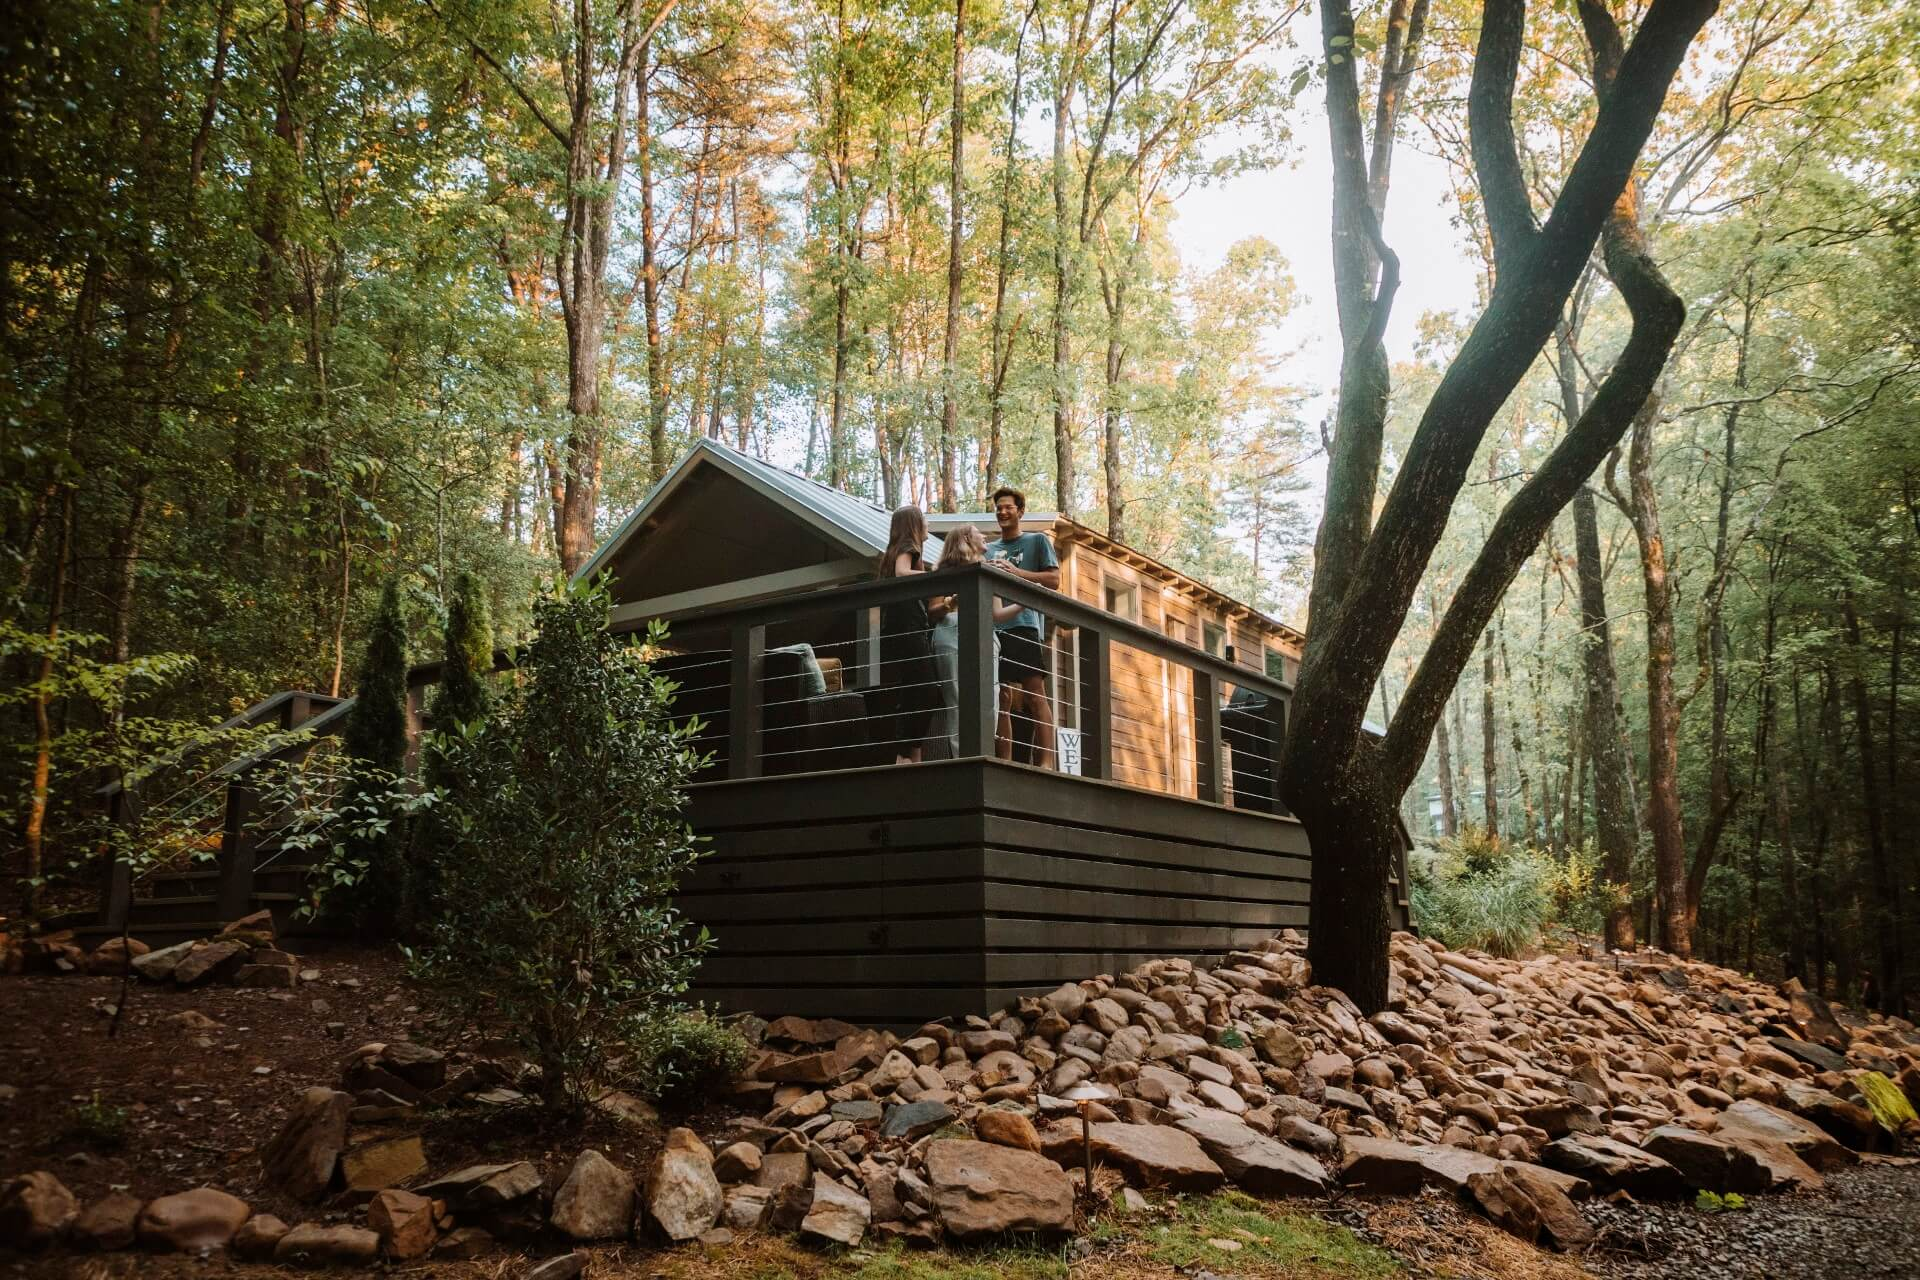 3 friends laughing on the deck of a tiny home